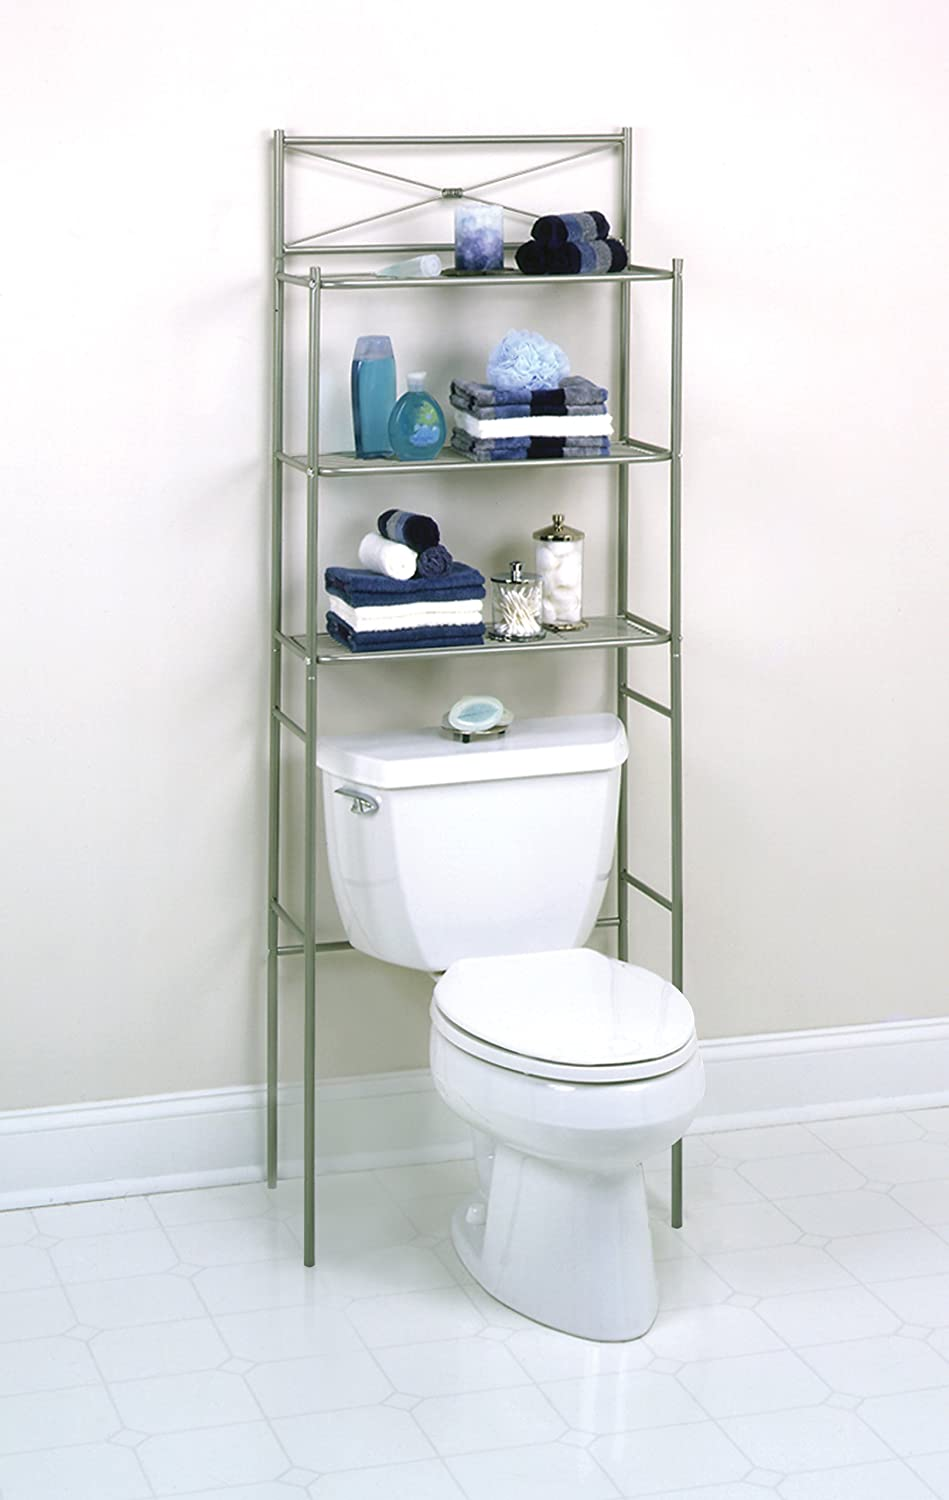 Zenith Bathstyles Spacesaver Bathroom Storage Over The